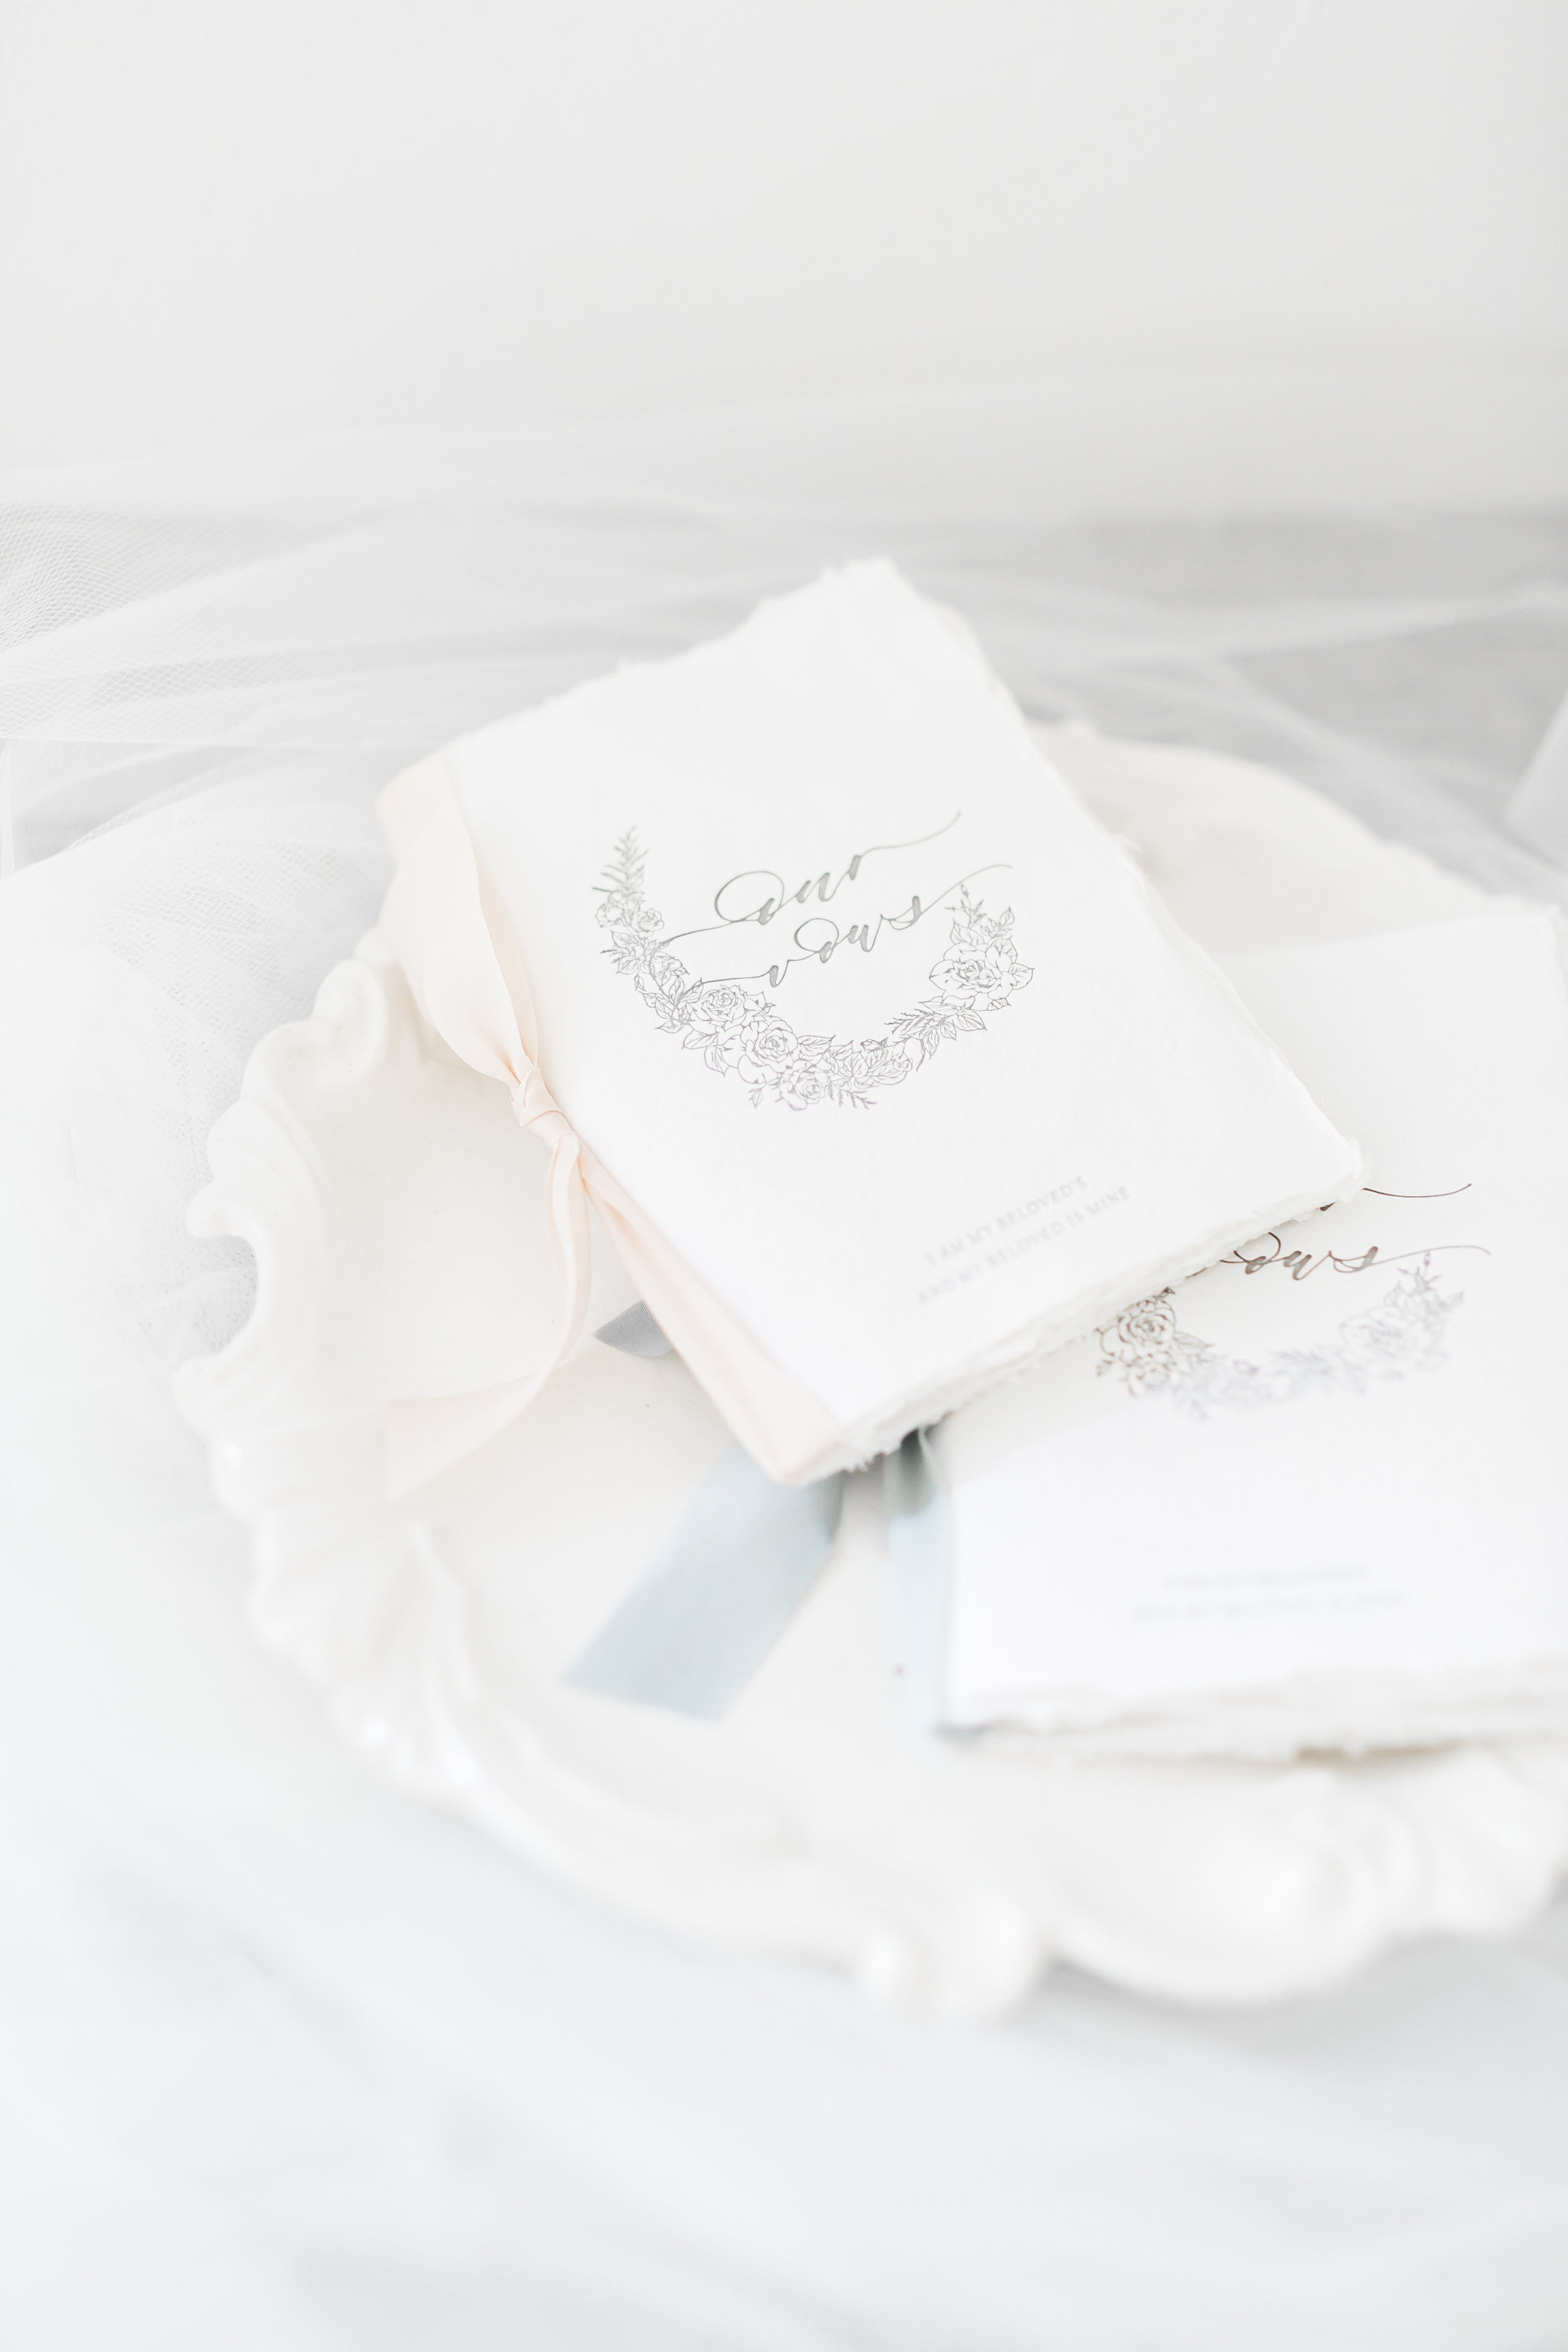 Custom Vow Books.   CREDITS:  Destination Wedding Planner  ANDREA EPPOLITO EVENTS  · Images by  J.ANNE P  HOTOGRAPHY  · Video  HOO FILMS  · Venue Ritz Carlton Bacara Santa Barbara ·Gown  MONIQUE LHULLIER ·Bridesmaids Dresses  SHOW ME YOUR MUMU ·Stationery  SHE PAPERIE ·Bride's Shoes  BADGLEY MISCHKA ·Hair and Makeup  TEAM HAIR AND MAKEUP · Floral  BLUE MAGNOLIA ·Linen  LA TAVOLA ·Decor Rentals  TENT MERCHANT ·Calligraphy  EBB ·Lighting  FIVE STAR AV ·Ice Cream Station  MCCONNELL'S ICE CREAM